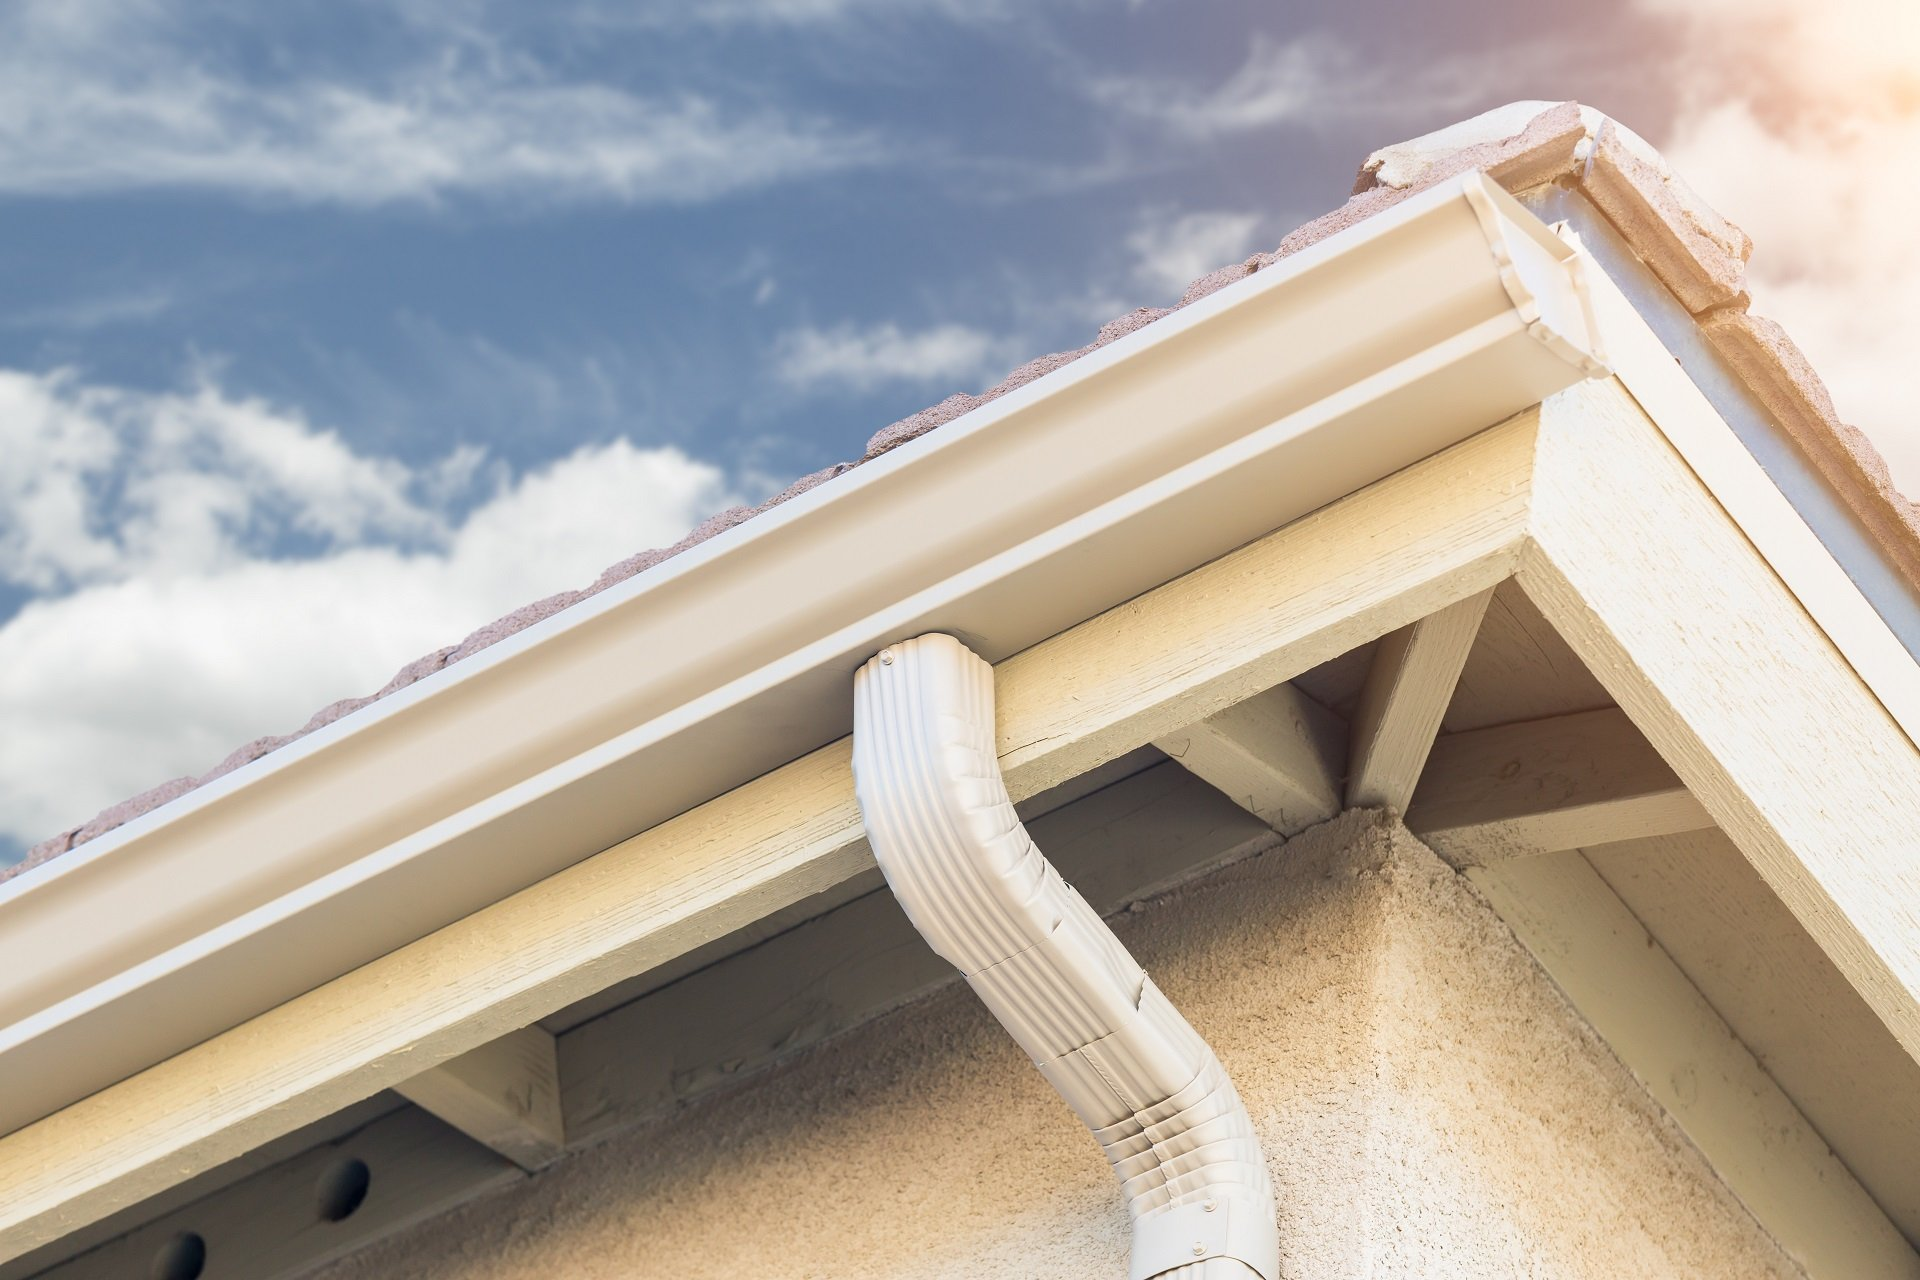 Nobody provides better gutter repair, replacement, and installation services than Woodall Heating & Cooling.